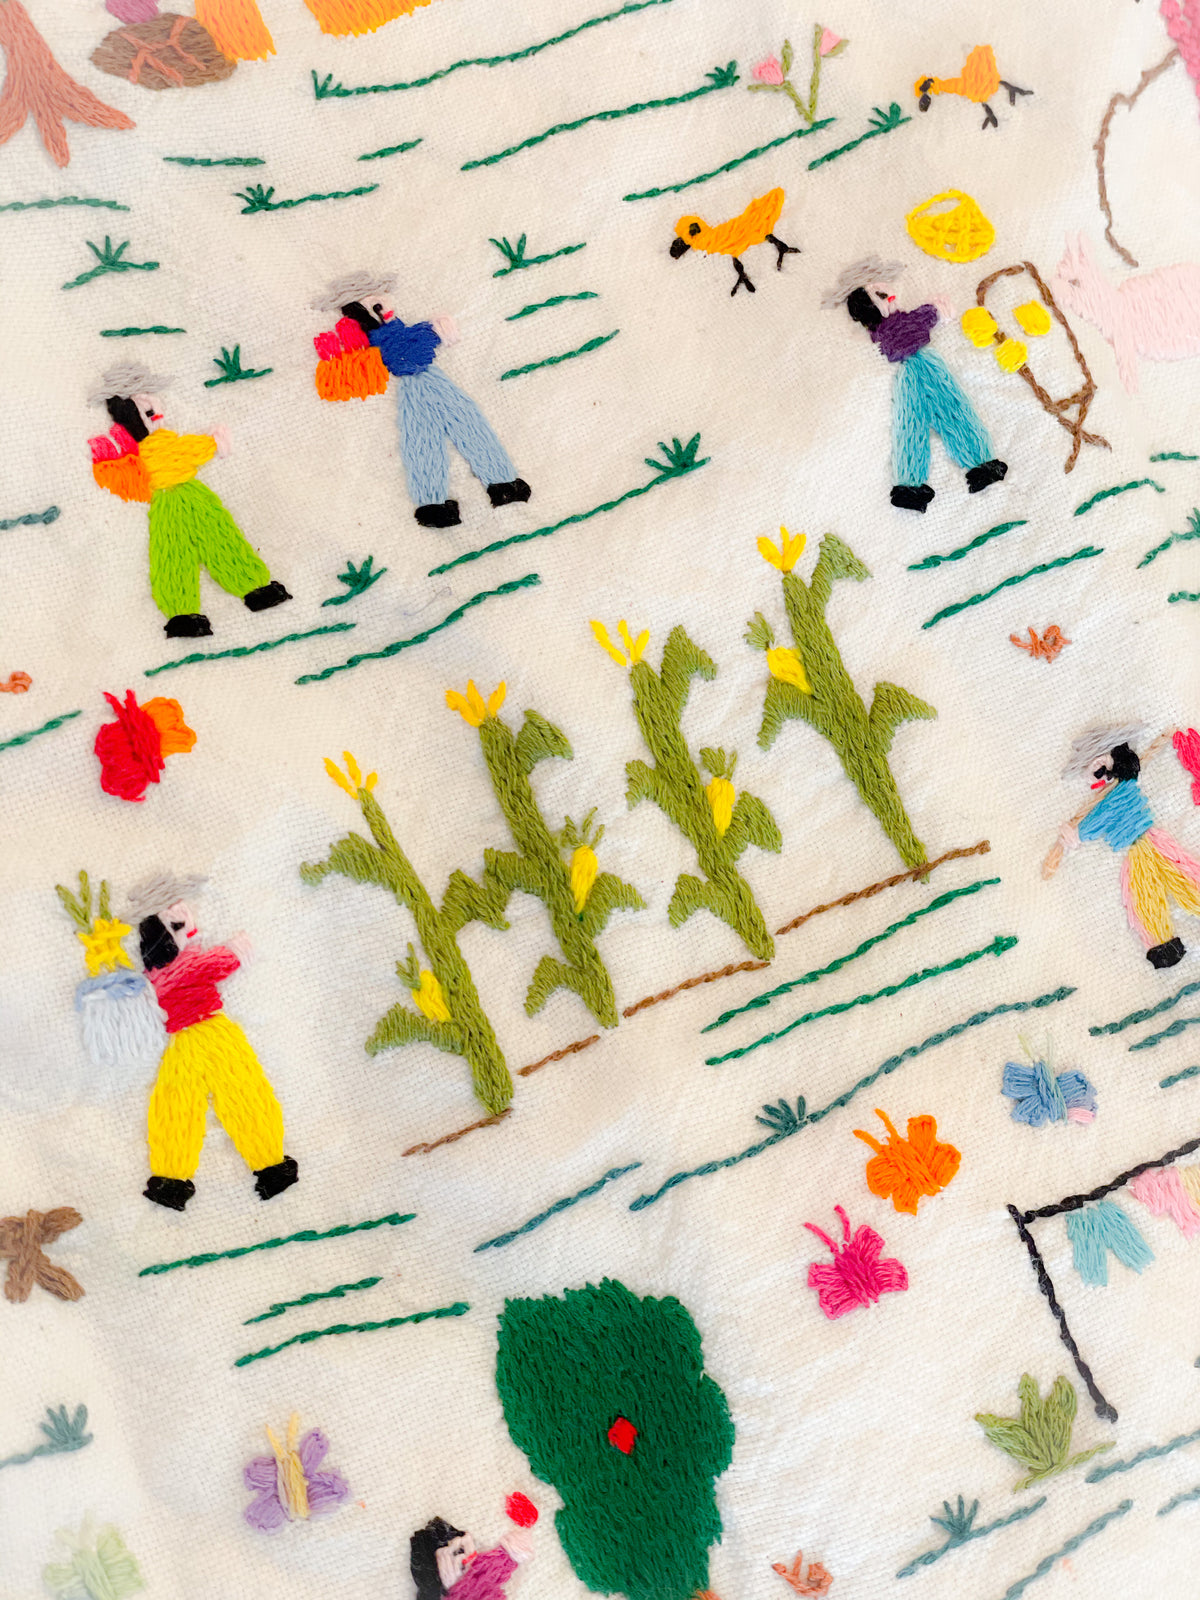 Sunday 03/21 Hand Embroidery Story Telling Class 2:00 - 4:00 CST - Zoom -